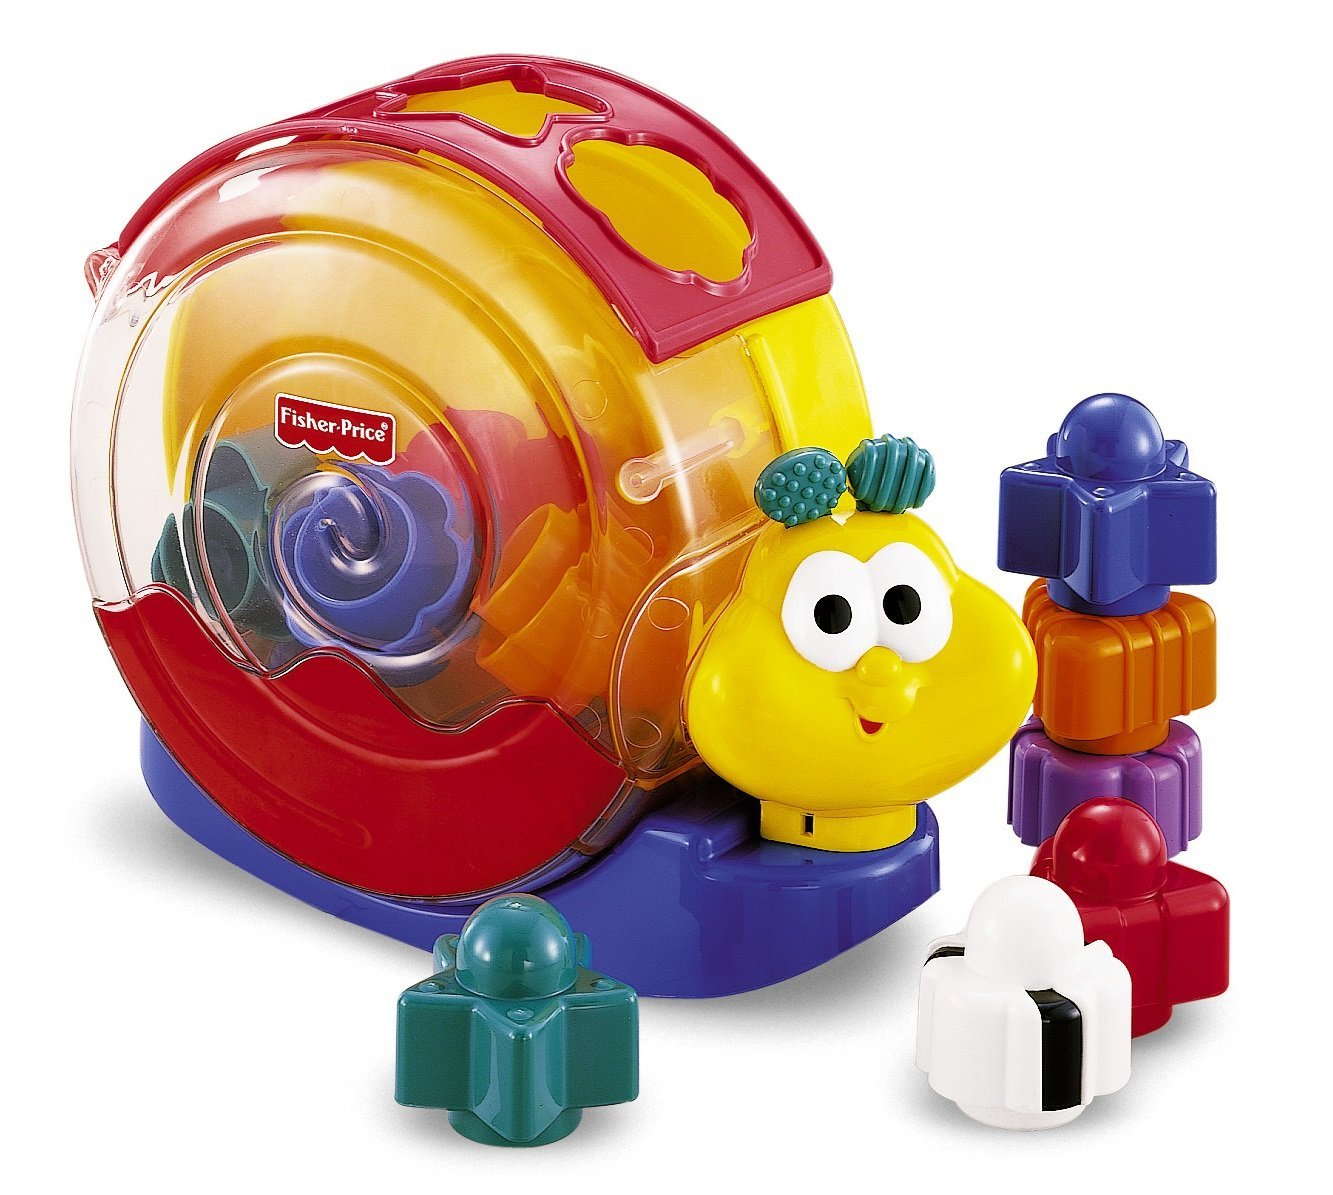 Mattel Fisher Price amazon